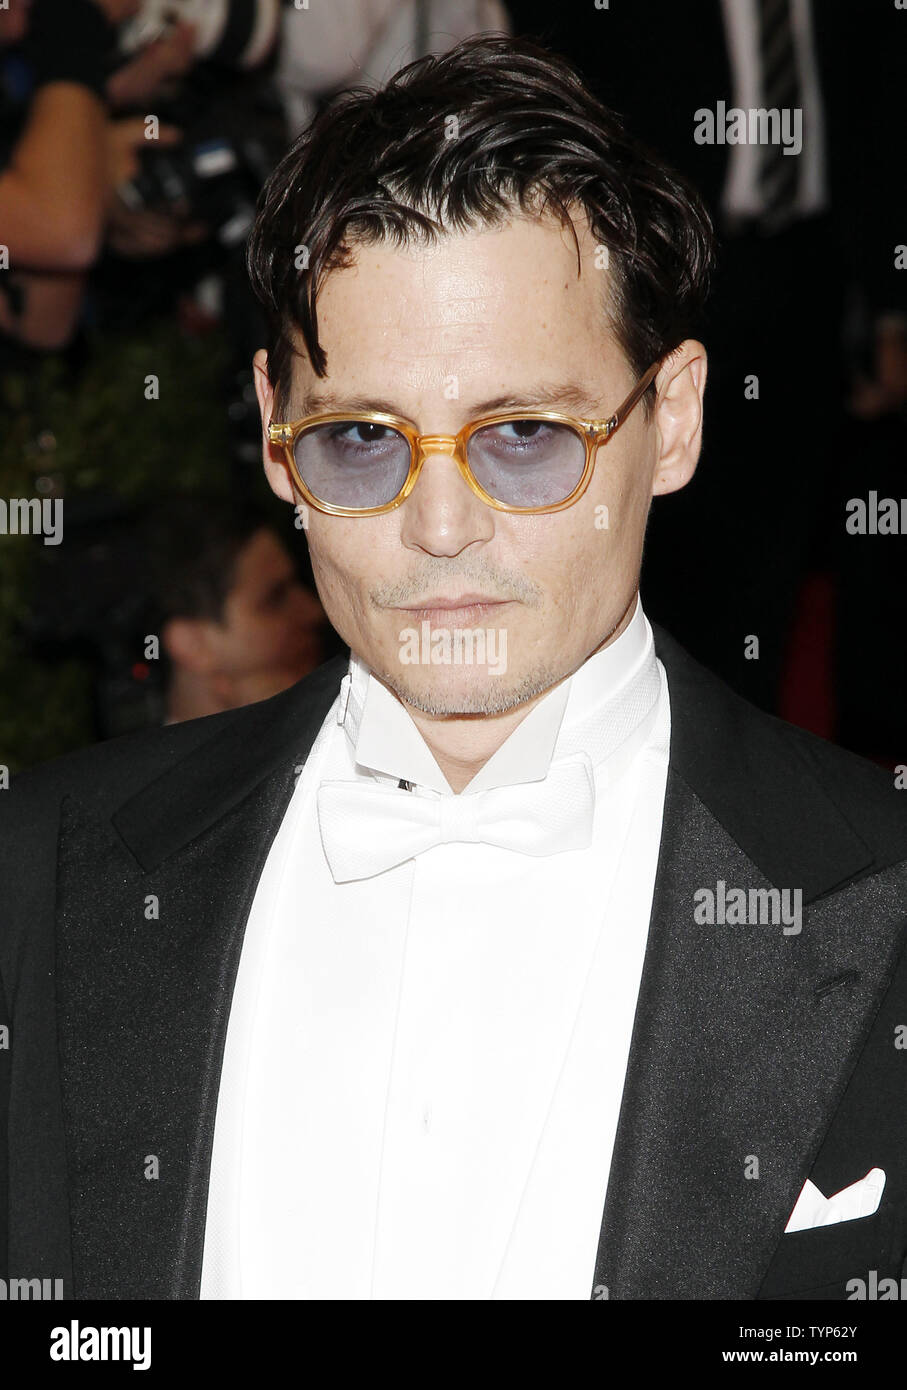 Johnny Depp arrives on the red carpet at the Costume Institute Benefit celebrating the opening of Charles James: Beyond Fashion and the new Anna Wintour Costume Center at the Metropolitan Museum of Art in New York City on May 5, 2014.    UPI/John Angelillo - Stock Image